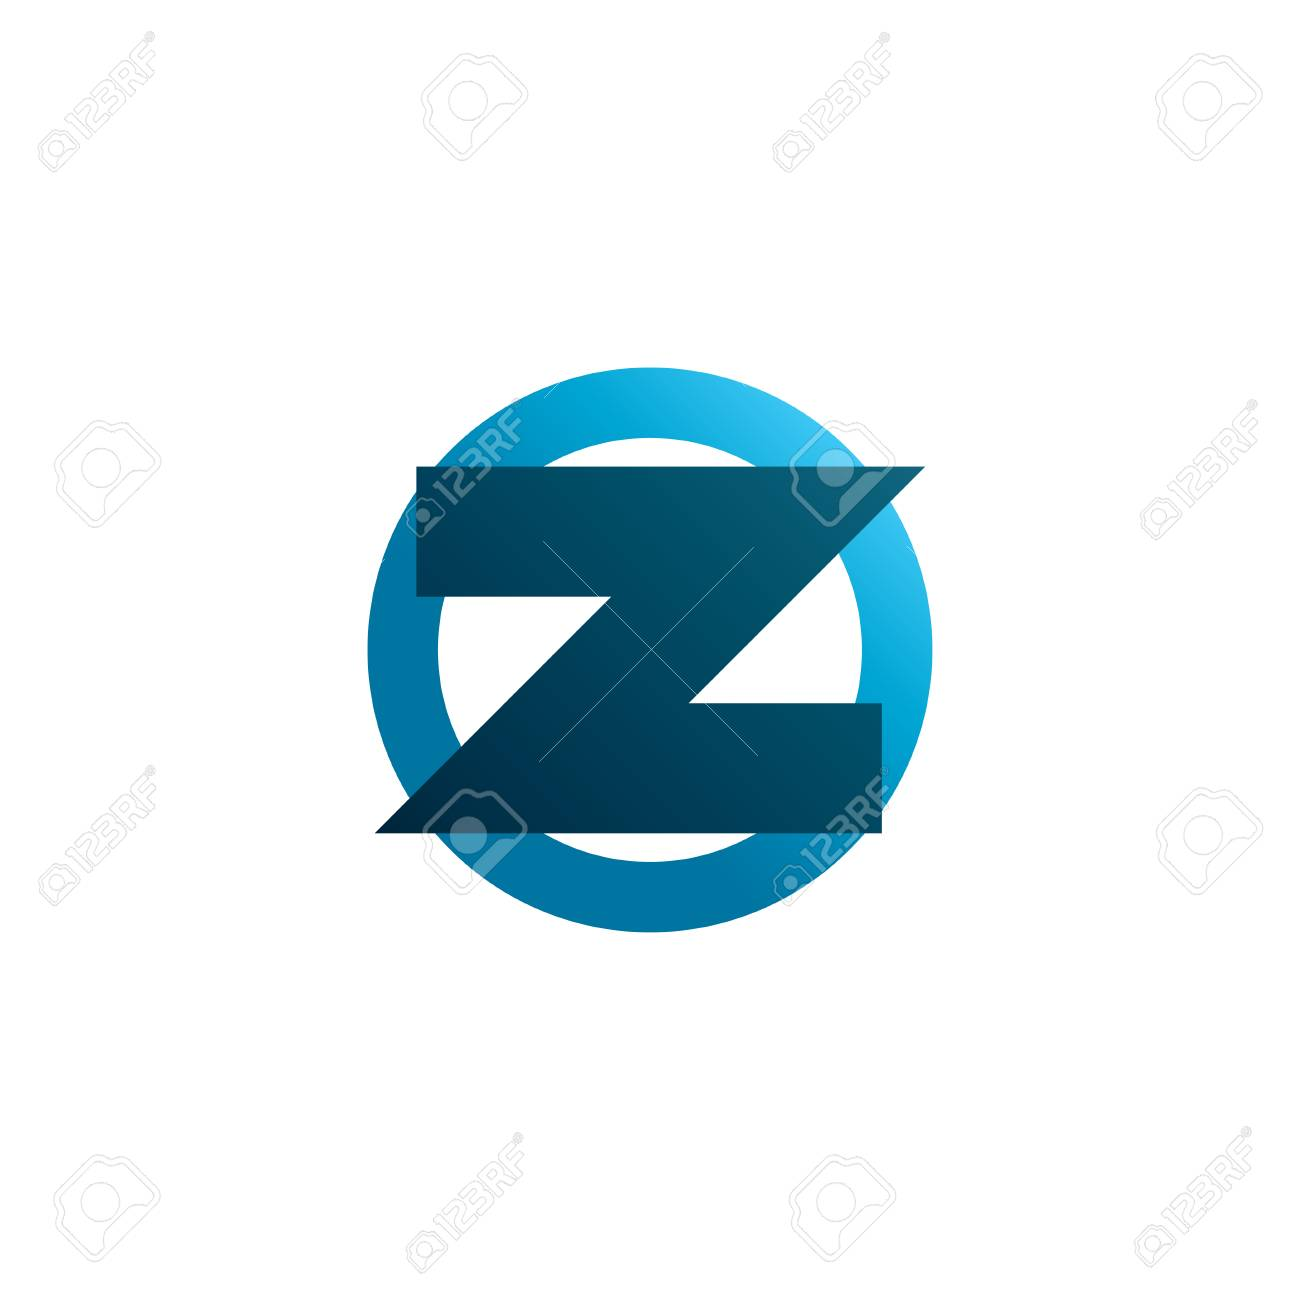 abstract symbol of letter z template logo design vector eps8